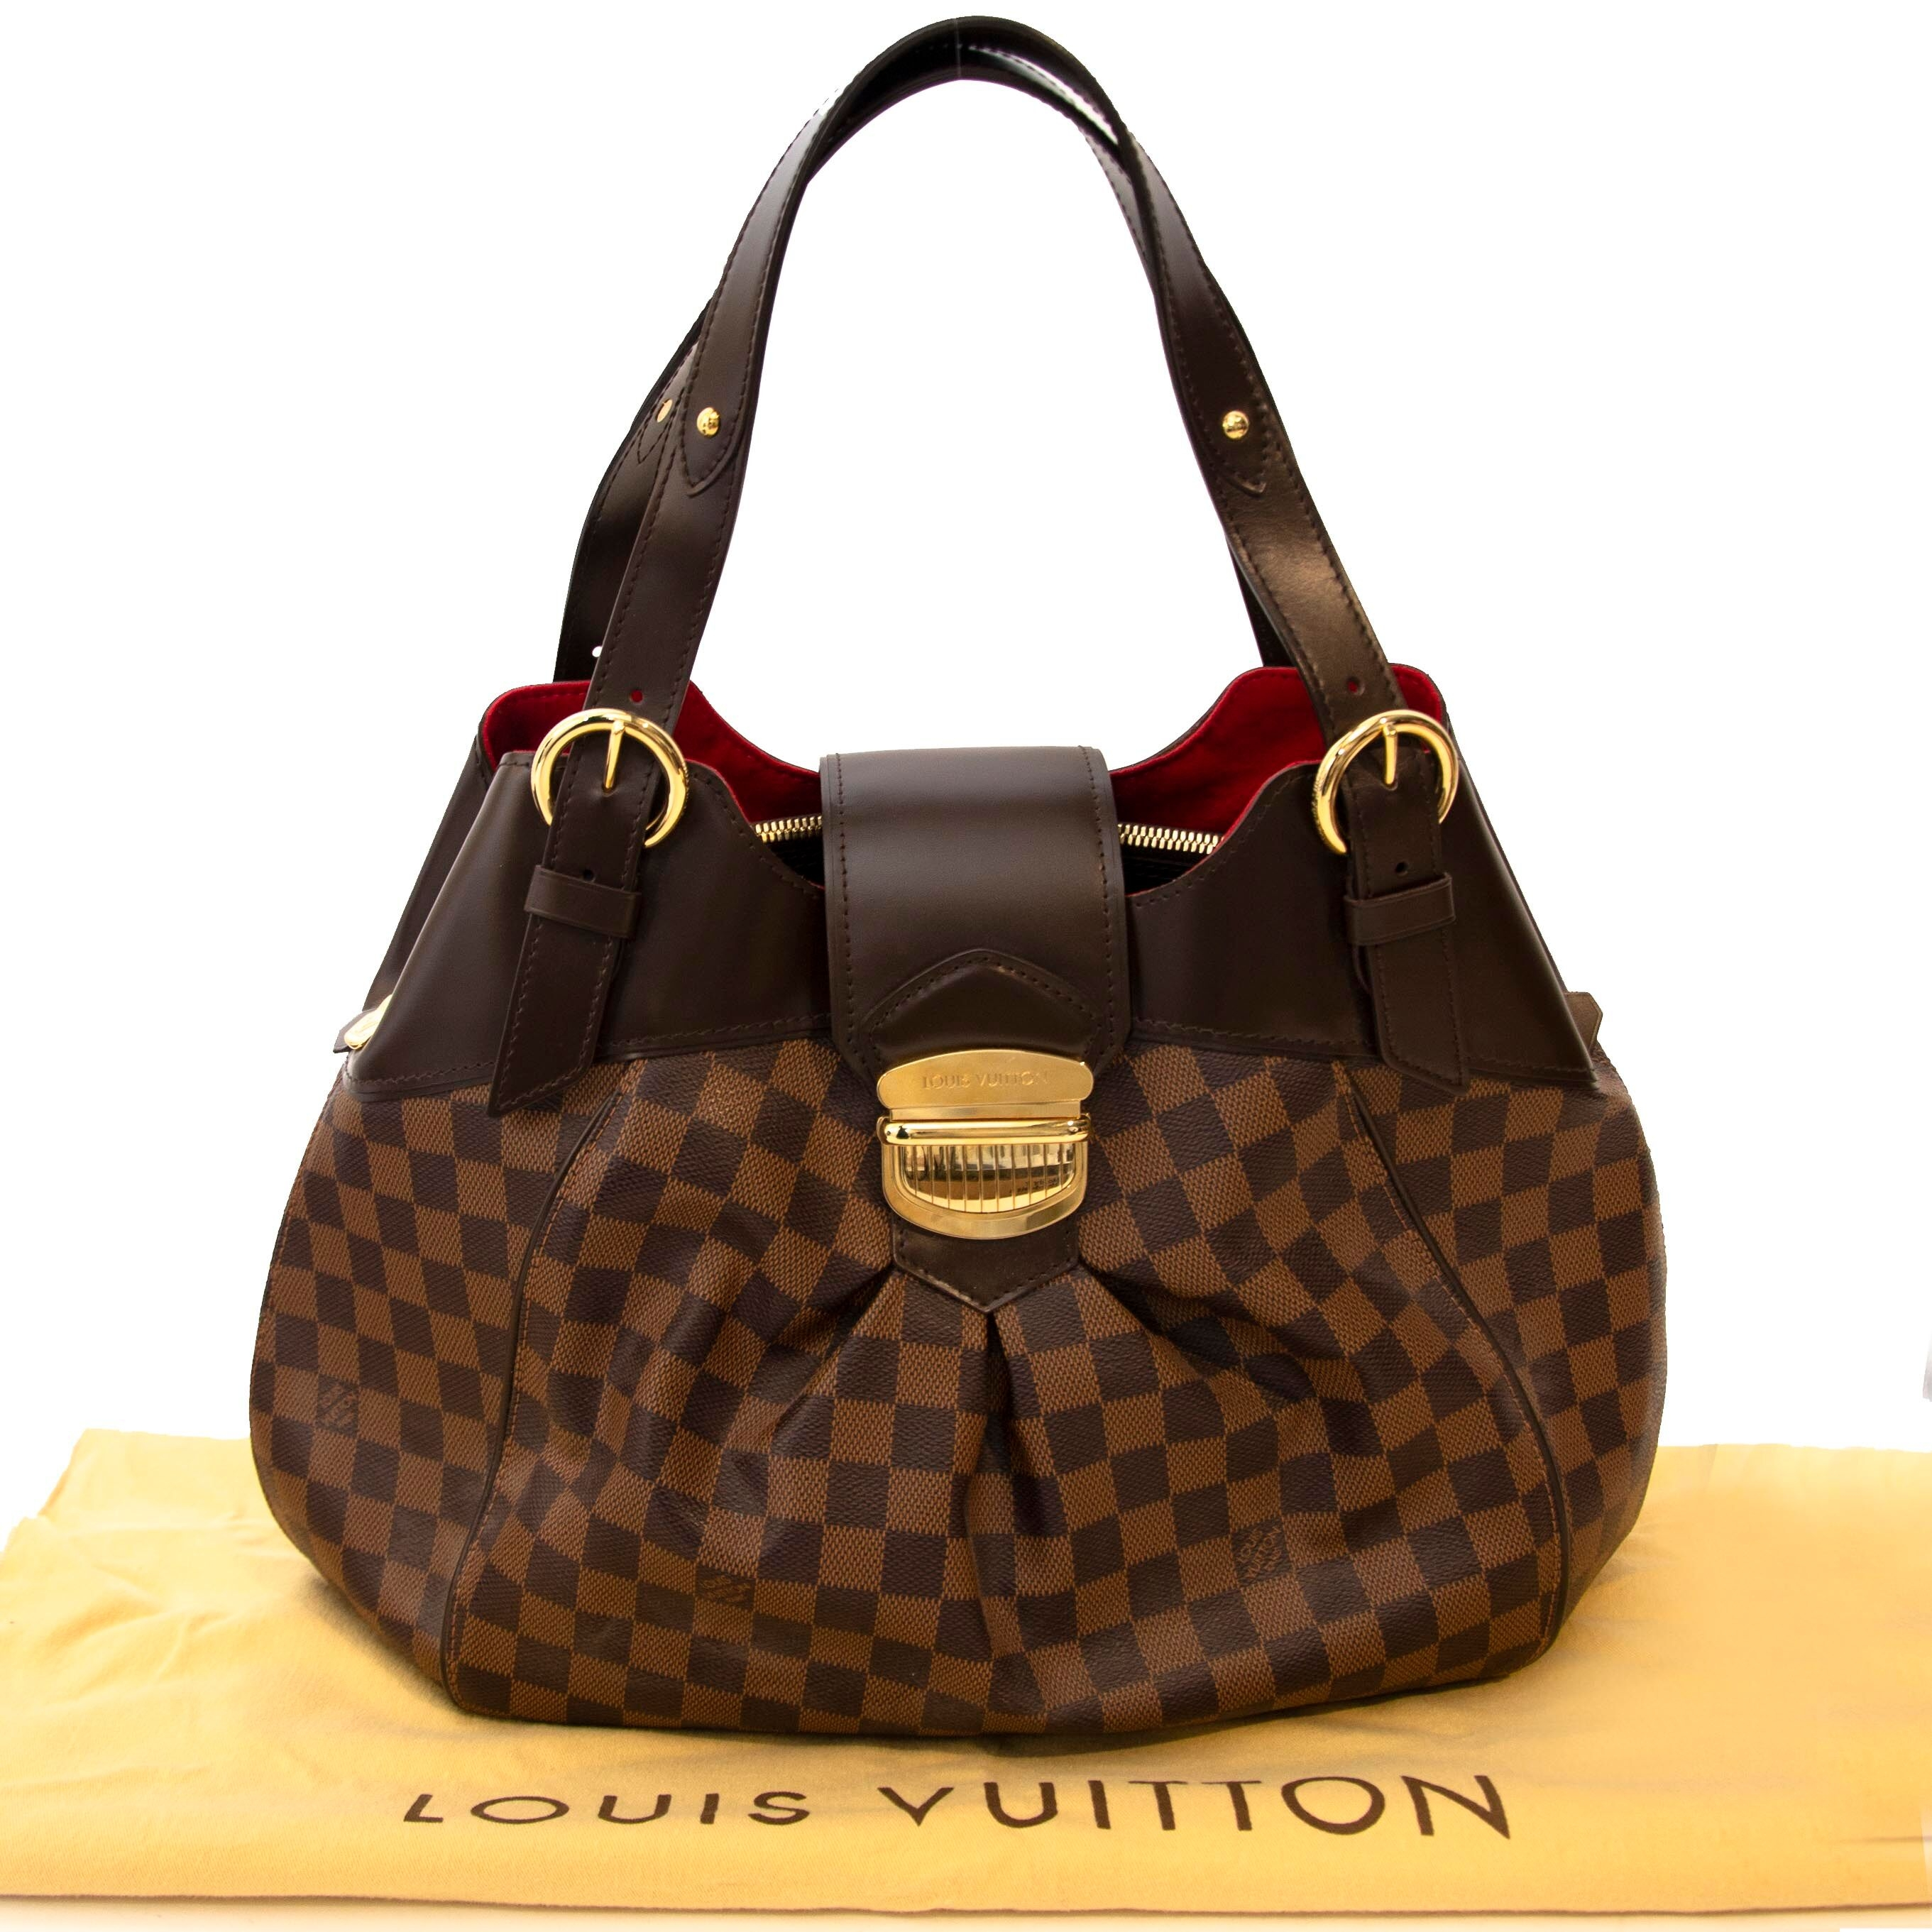 cheter en ligne seconde main Louis Vuitton Damier Ebene Sistina.